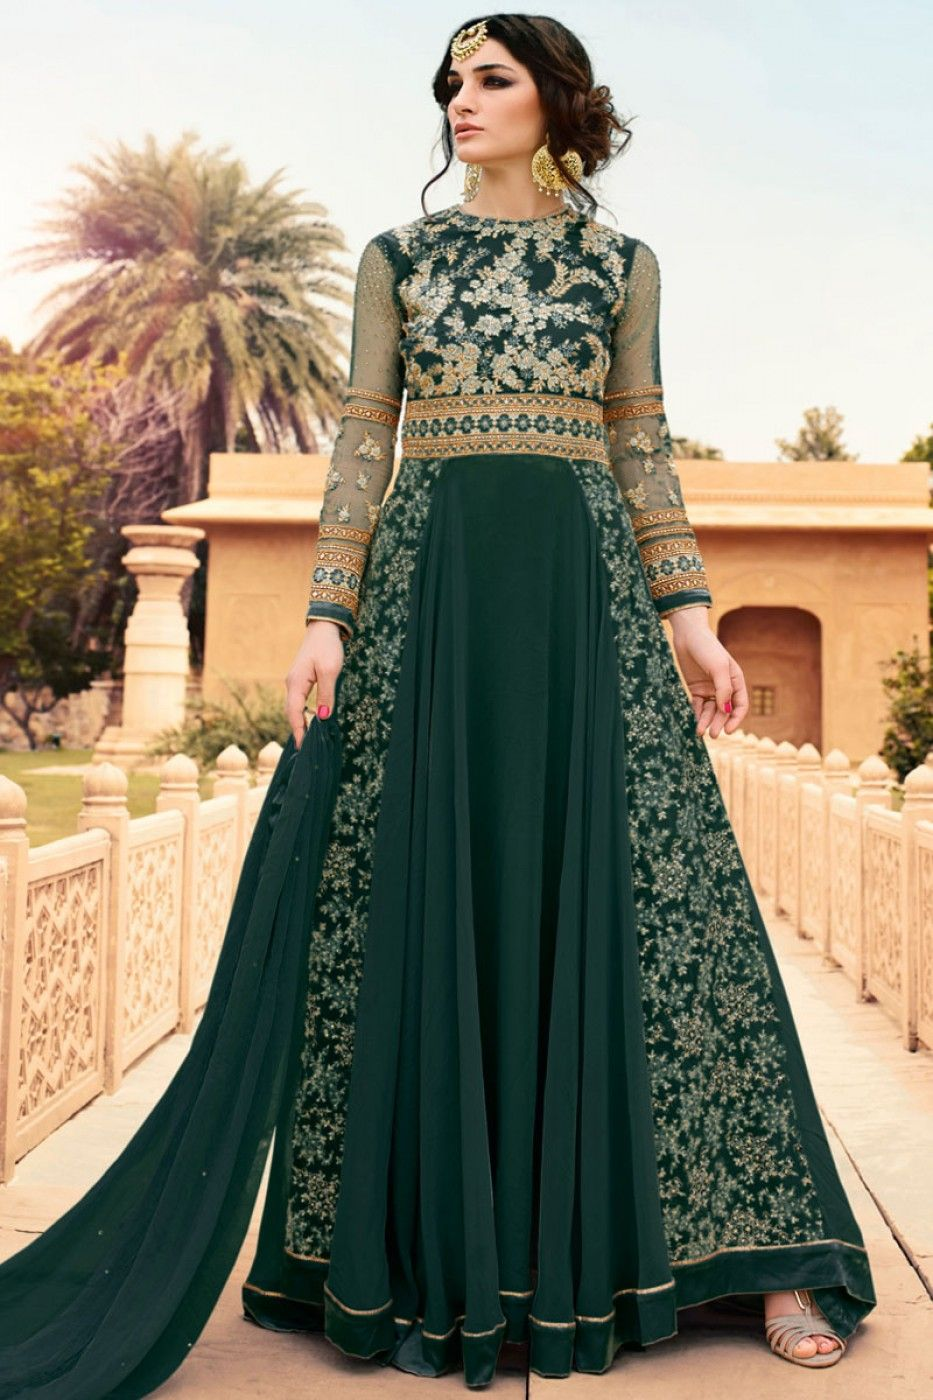 2efe483df69 Dark Green Color Georgette Fabric Traditional Party Wear Designer Indian  Women Fashion Embroidered Anarkali